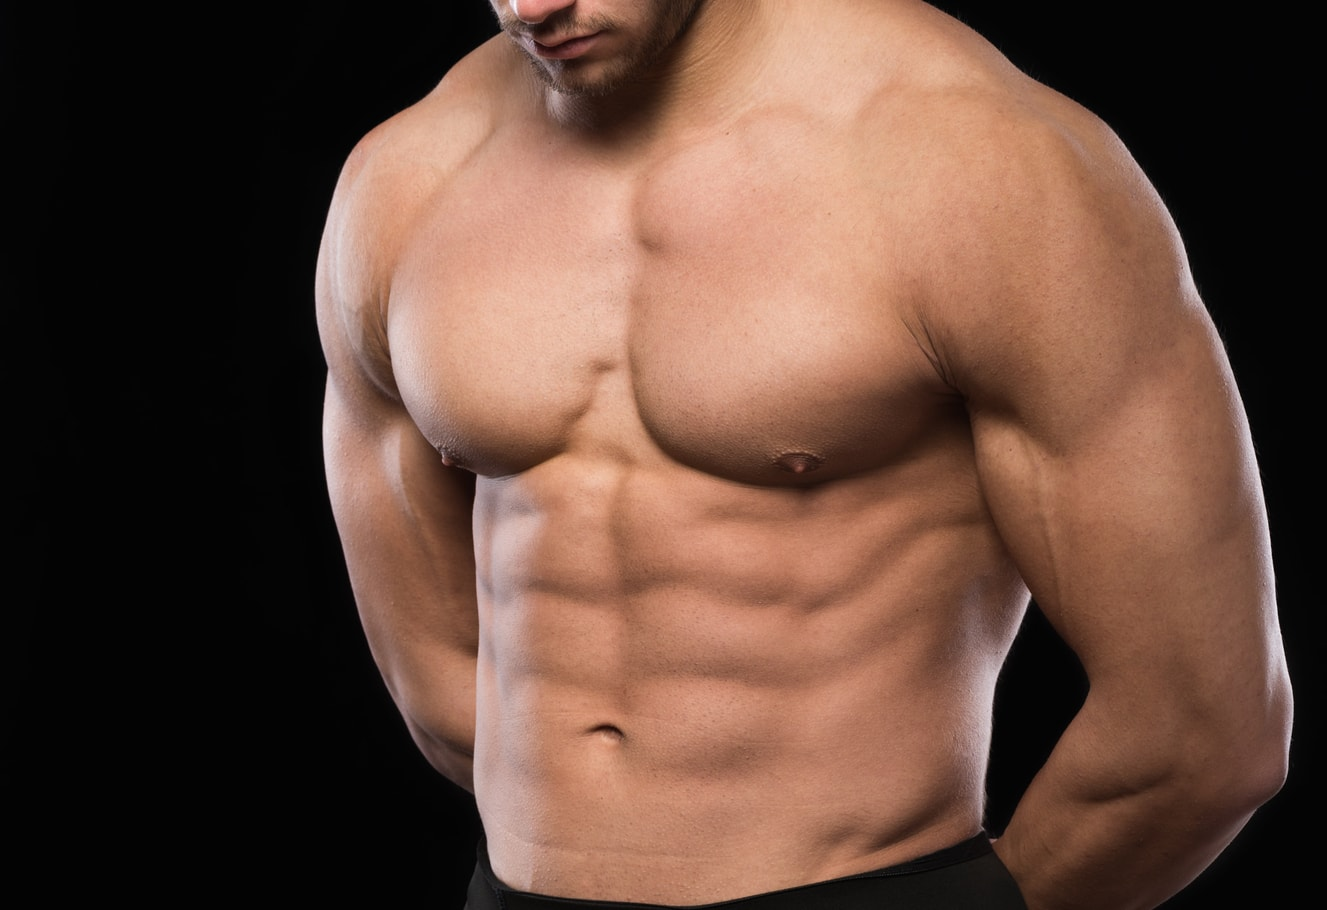 Abdominal Etching for Male Body Contouring